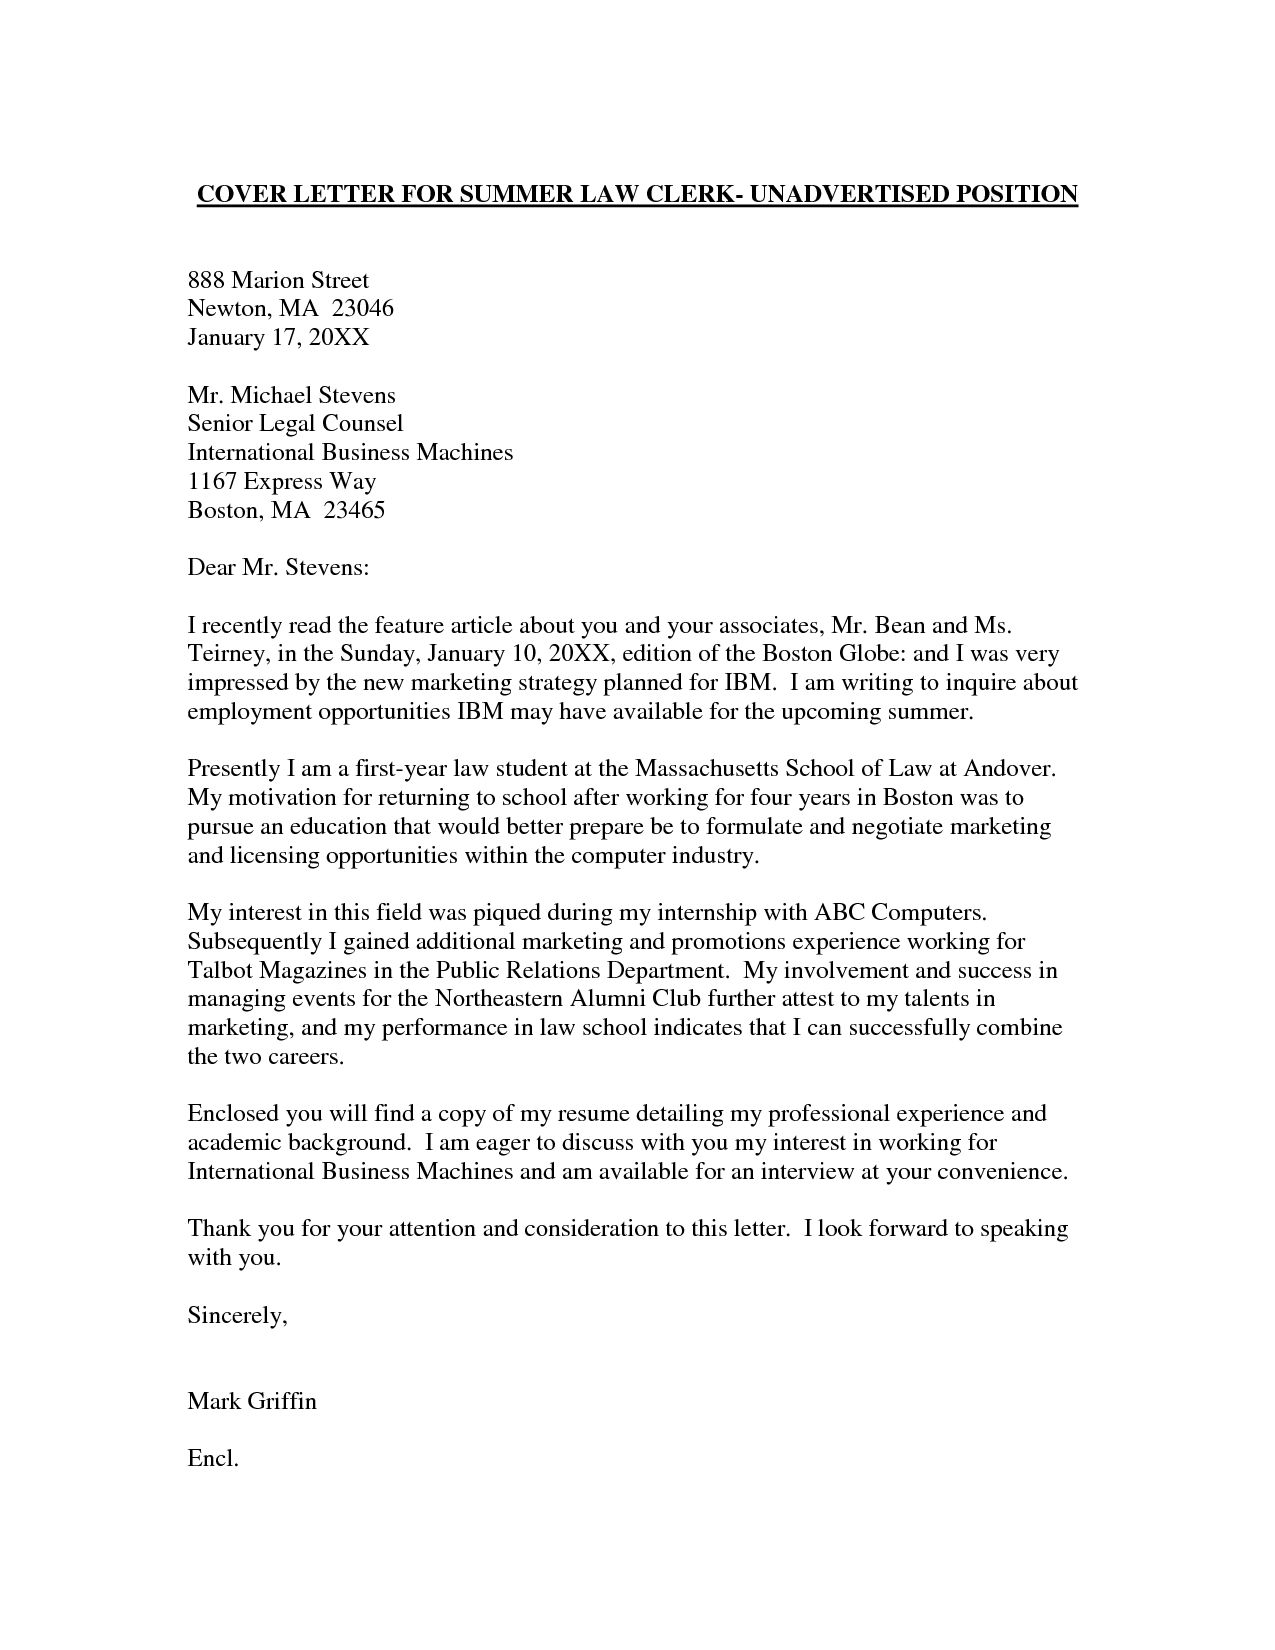 26 Sample Cover Letters For Employment Job Cover Letter Employment Cover Letter Cover Letter Example